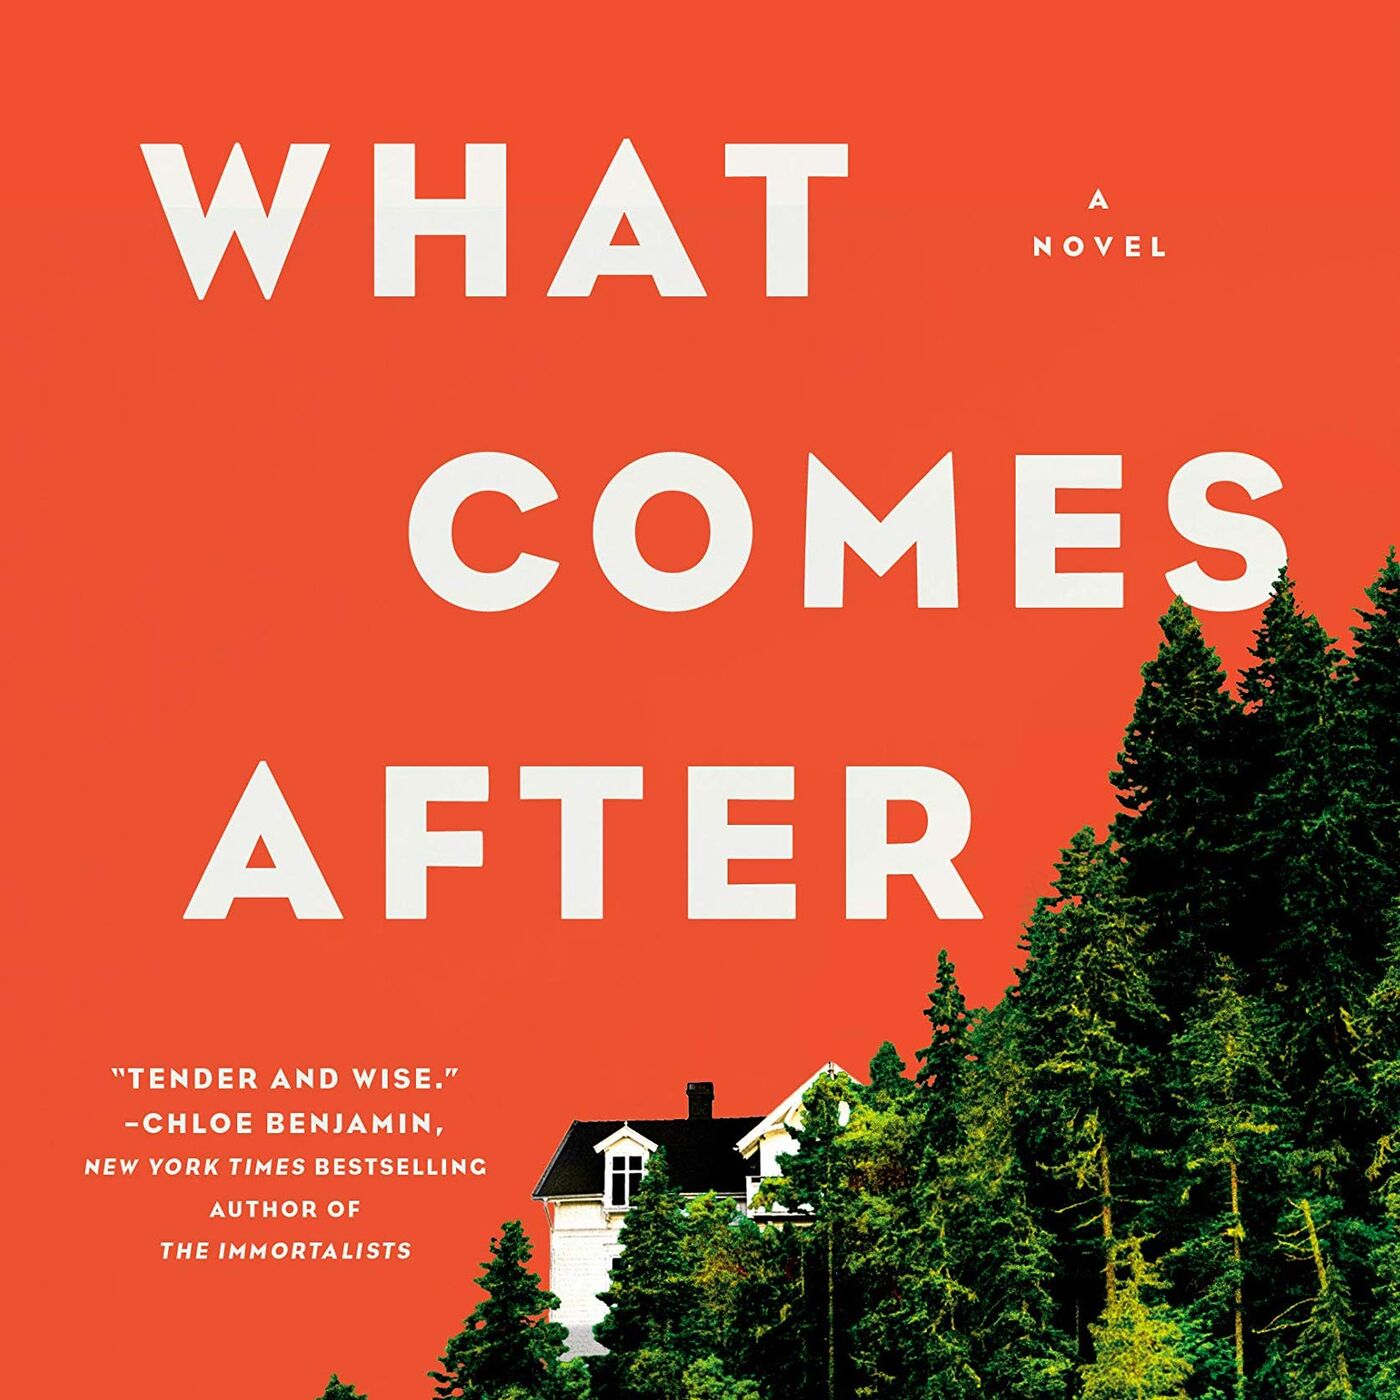 Oprah choice JoAnne Tompkins on What Comes After